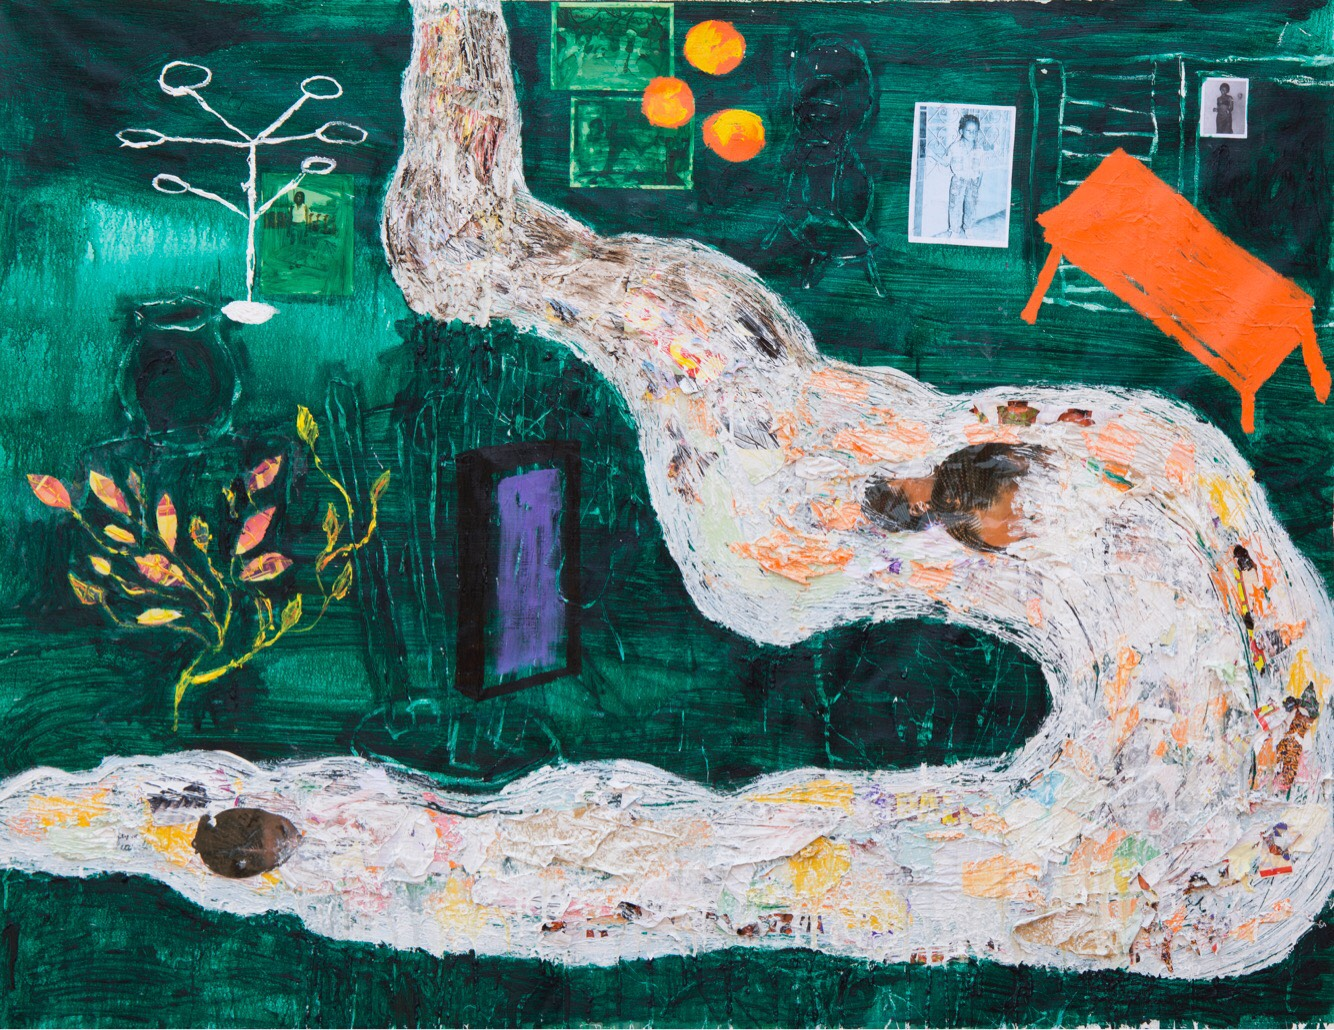 Nsuteen Buom (A River with a Room), 2017, mixed media (acrylics, wax, photographs) on canvas, 140 cm x 183 cm